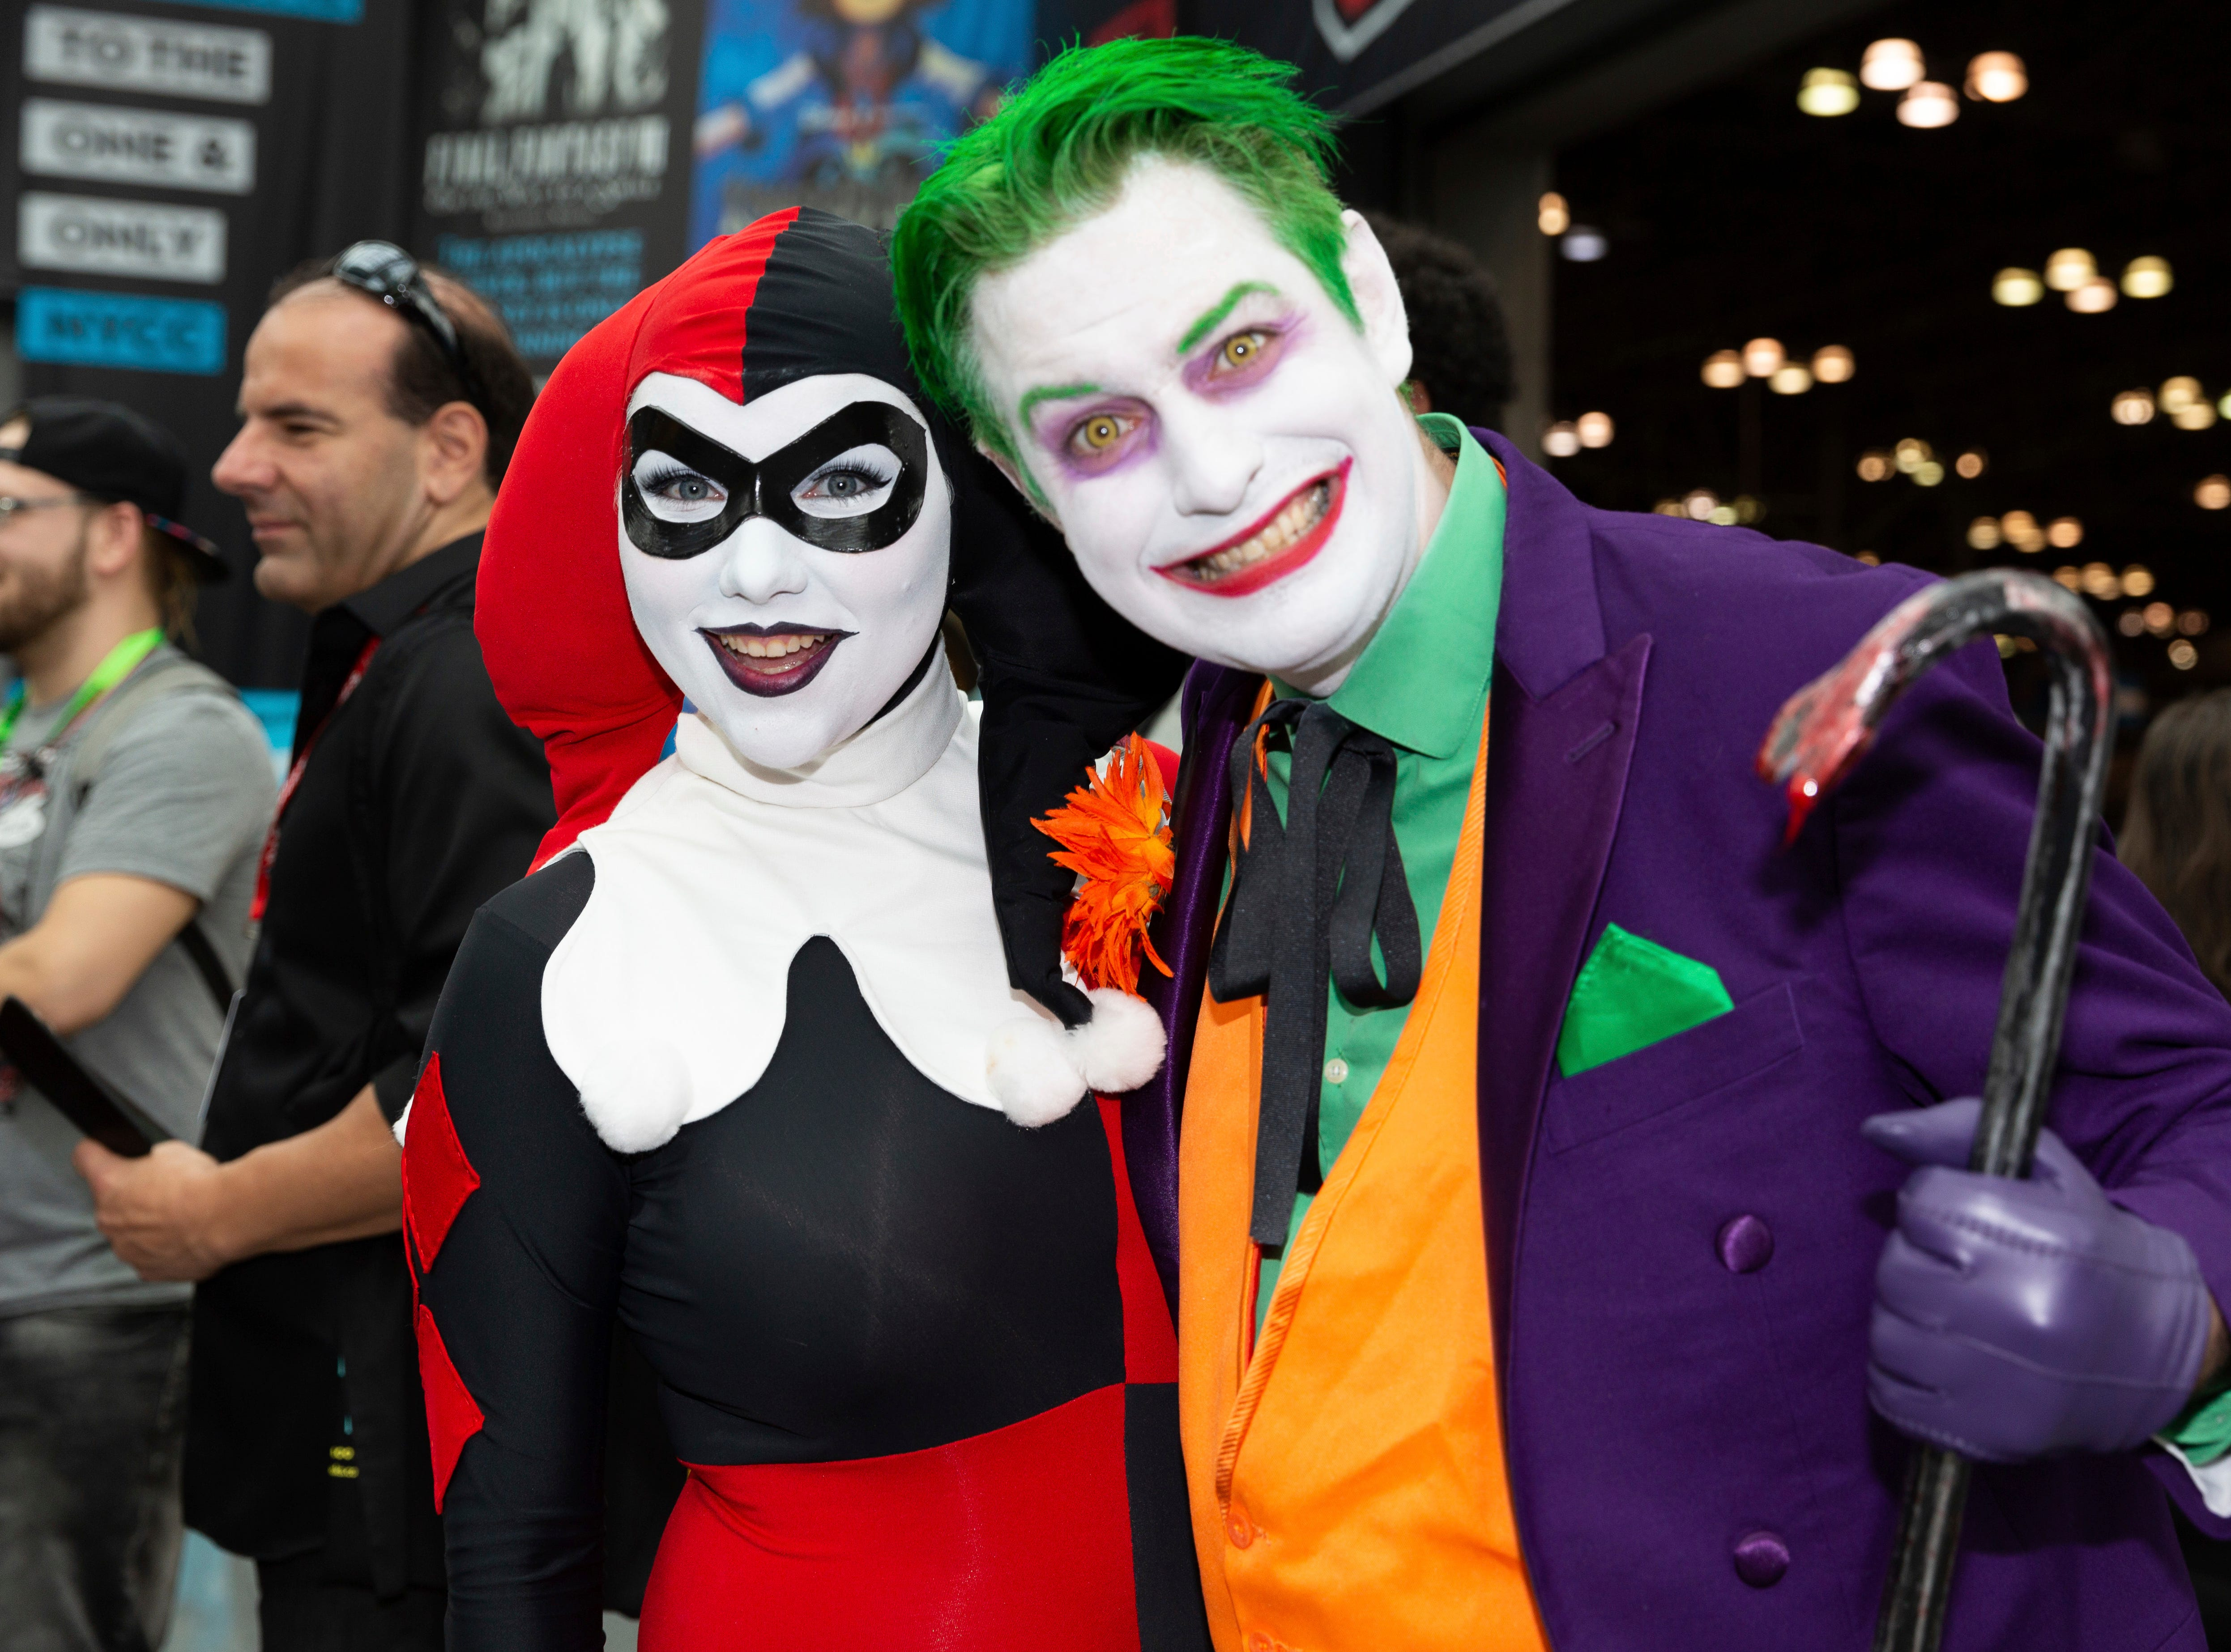 Attendees dressed as Harley Quinn, left, and The Joker pose for a photo during the first day of New York Comic Con, Thursday, Oct. 4, 2018. (AP Photo/Steve Luciano)